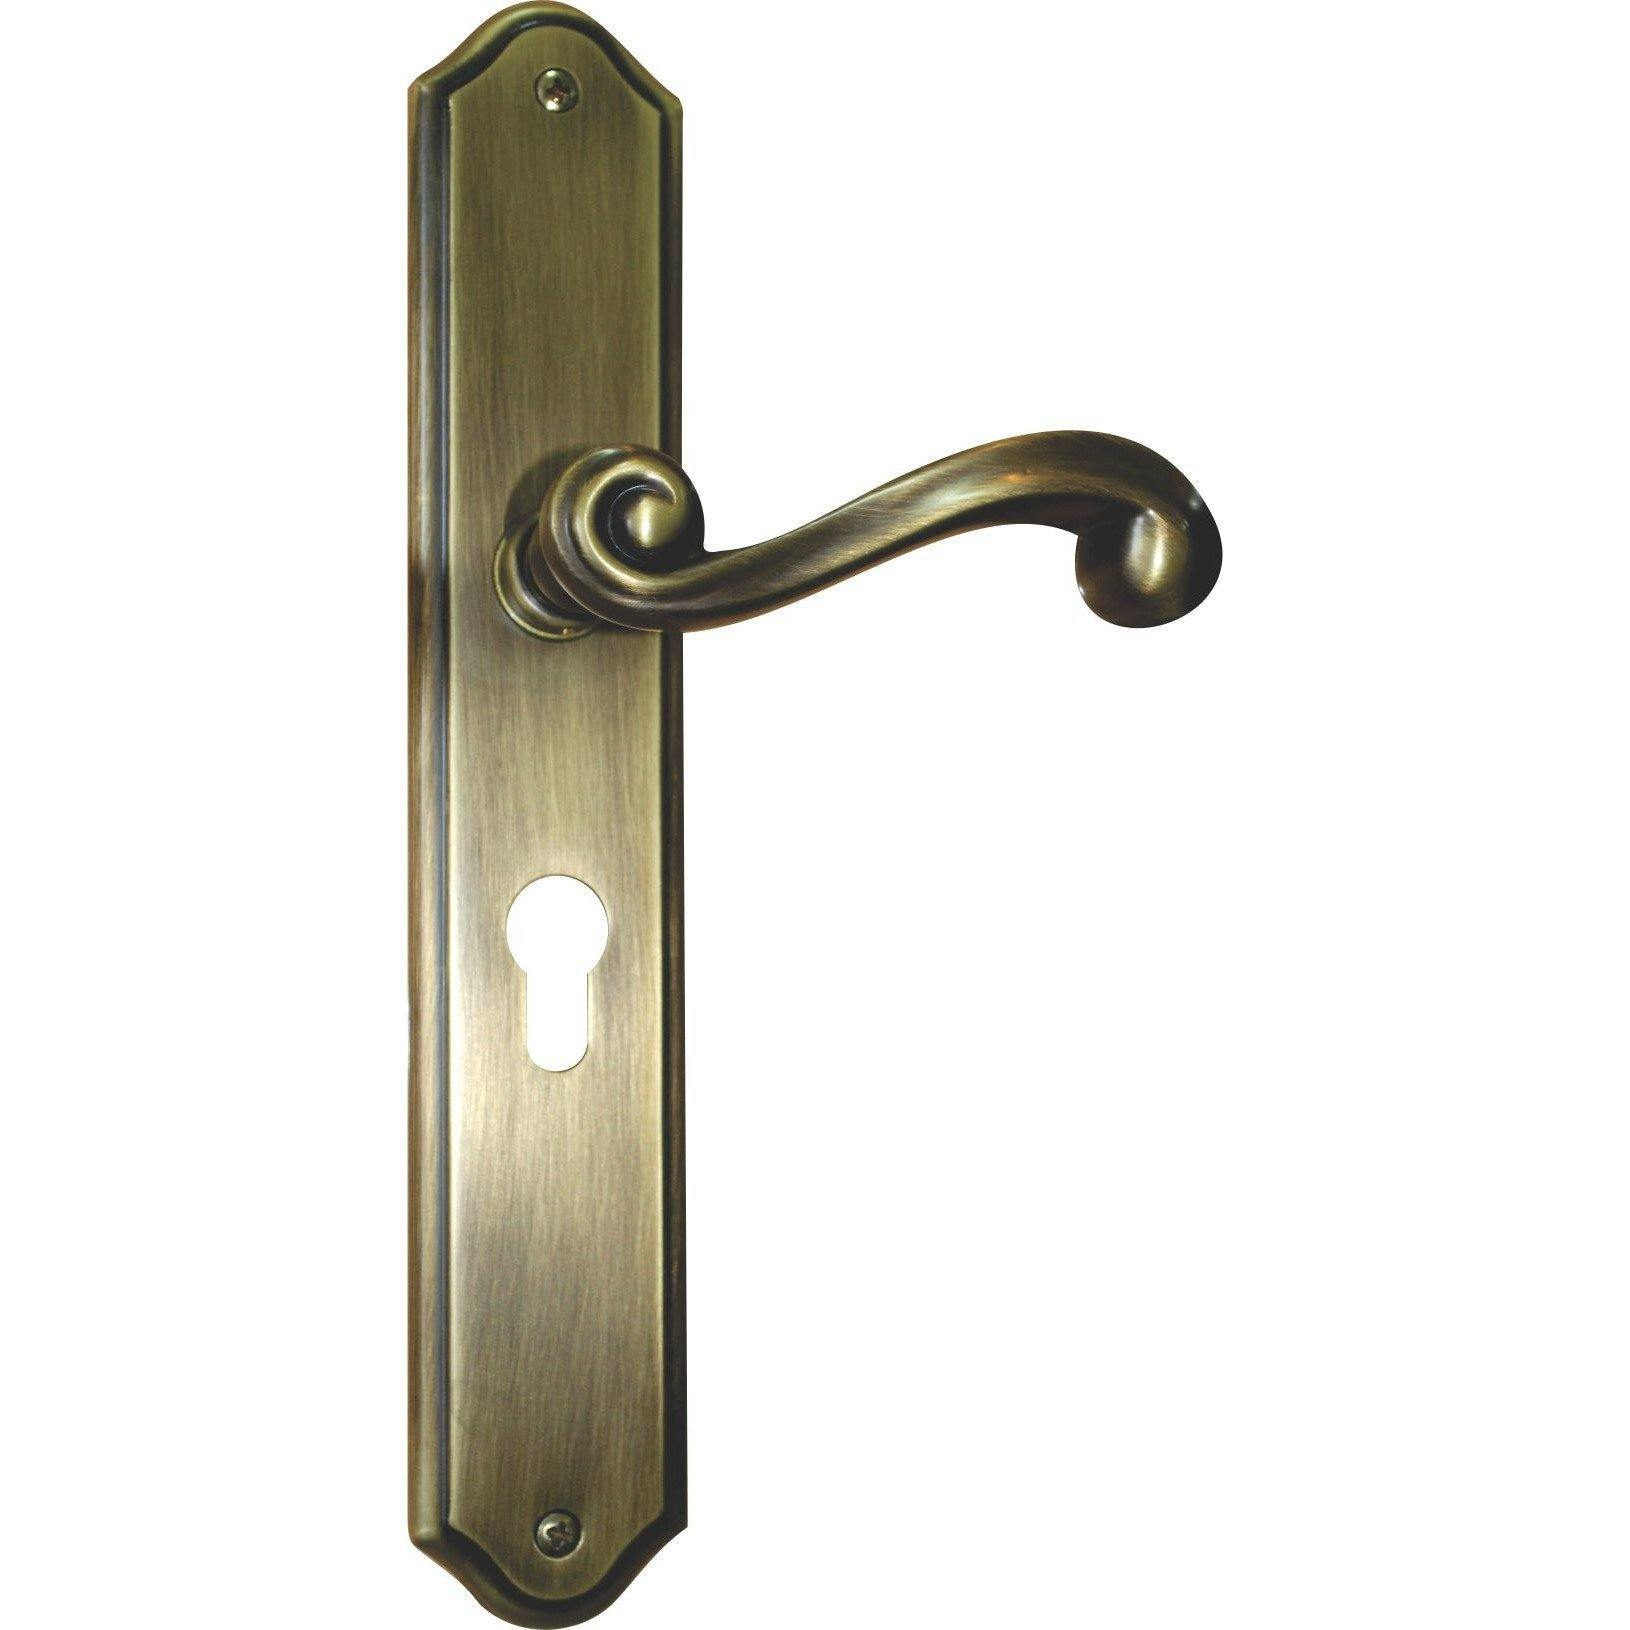 Scroll lever handle on back plate